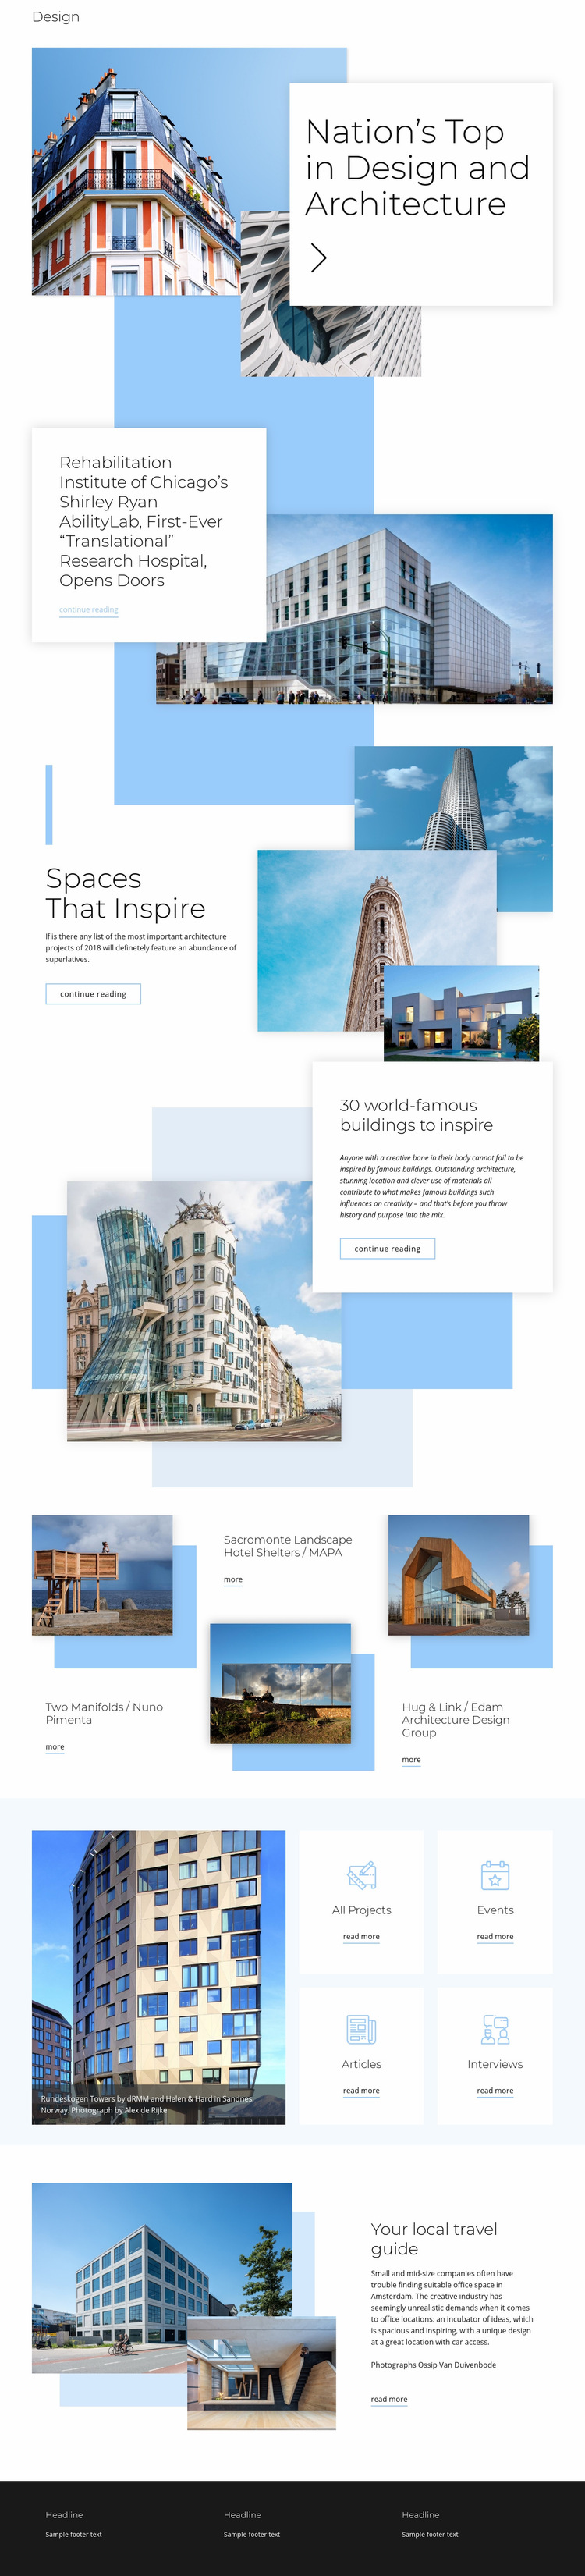 Rating for architecture Web Page Design